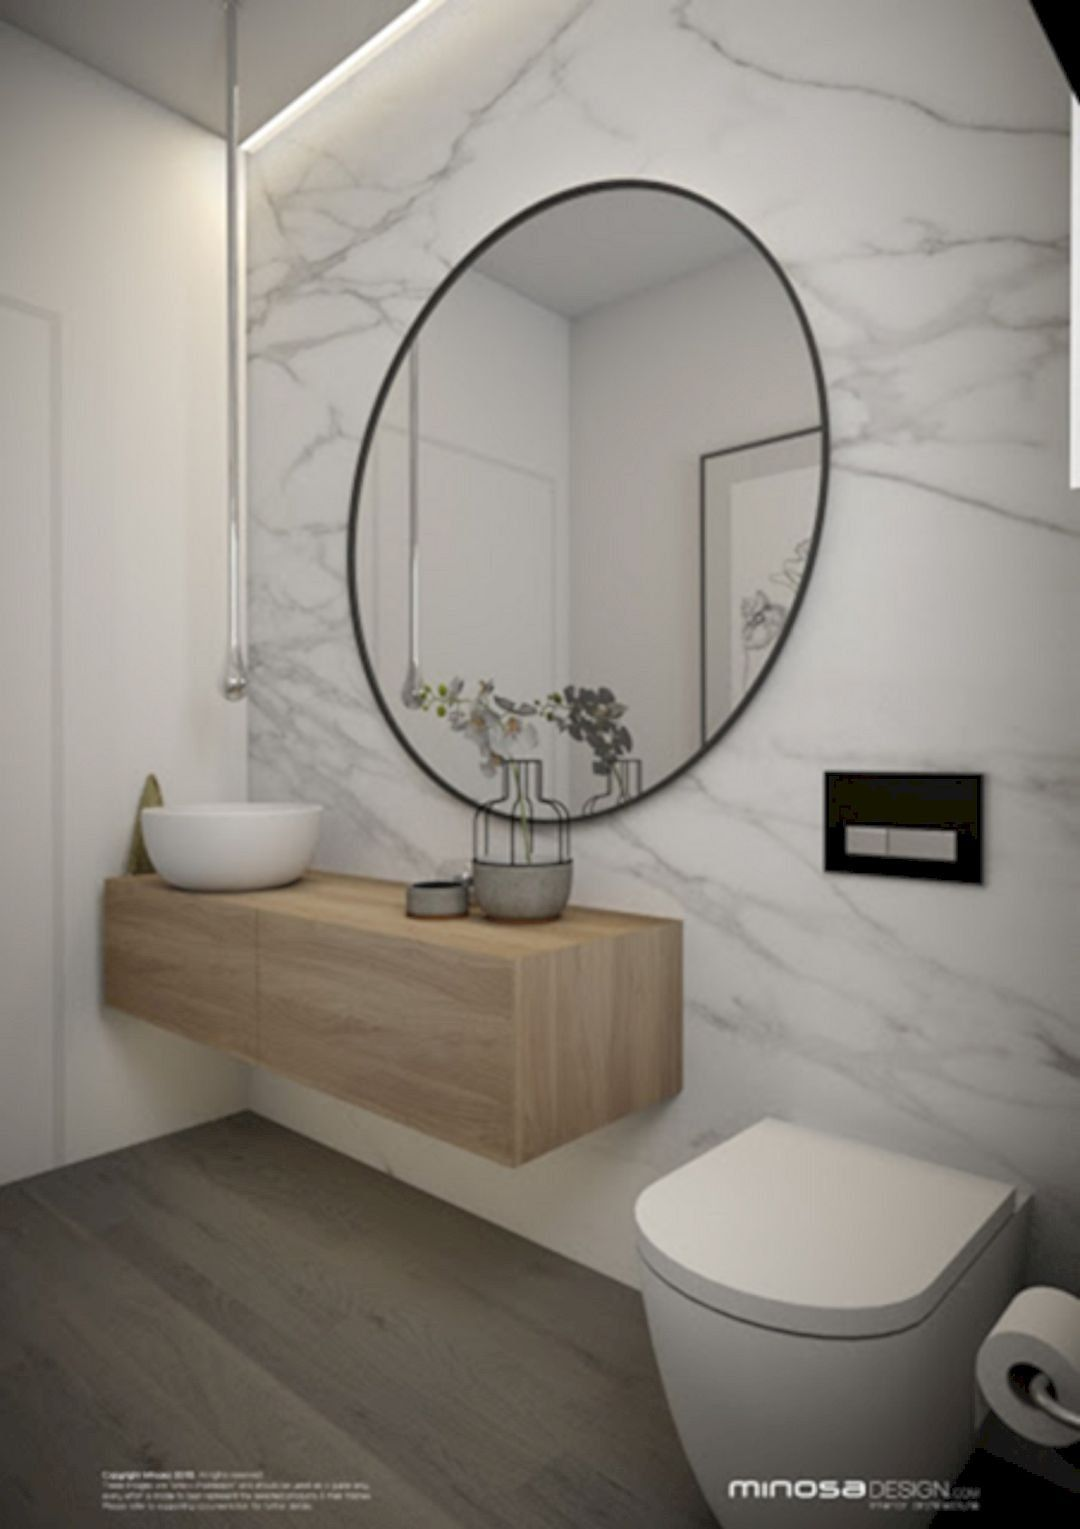 Stylish Modern Bathroom: 128 Best Designs Roundup | Gorgeous ... on examples of decorated bathrooms, linen closet designs for bathrooms, paint colors for small bathrooms,